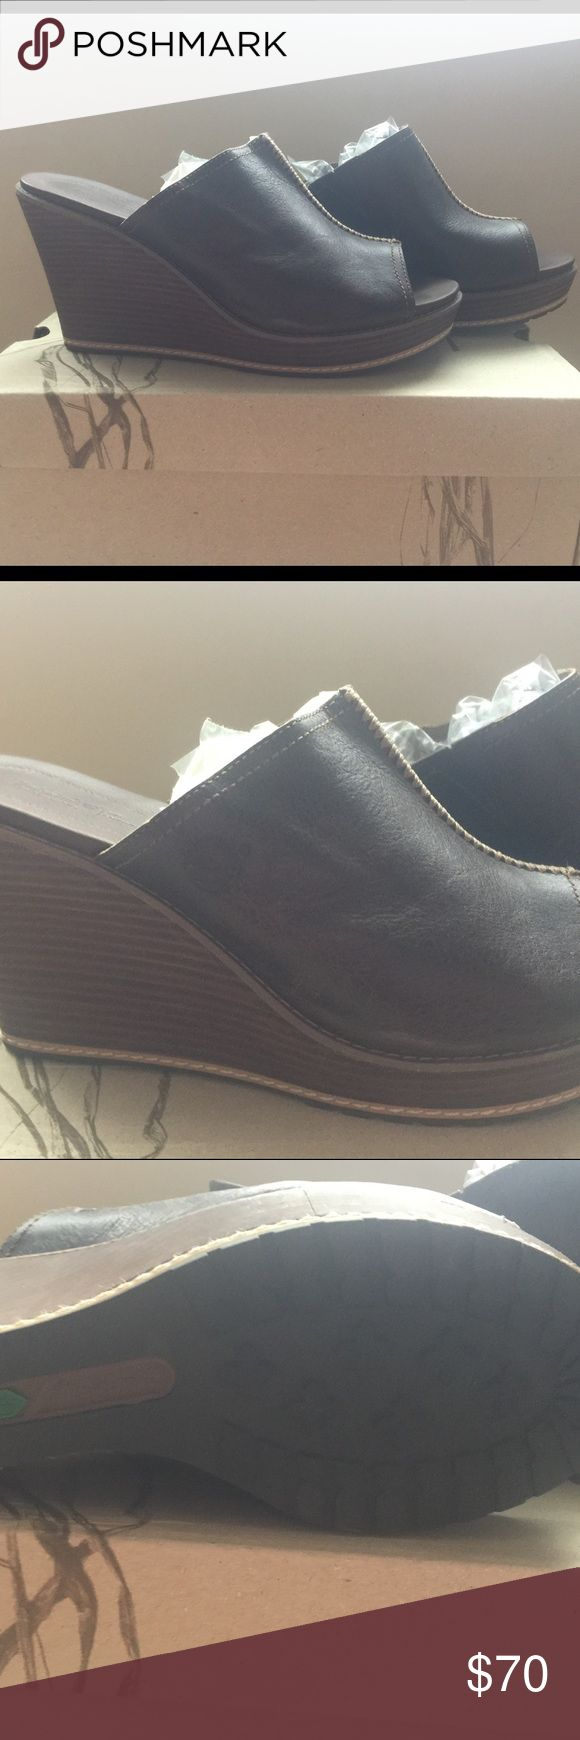 BNWOT Timberland Espresso Wedge Slides, Sz 9 BNWOT Timberland Espresso Wedge Slides, Sz 9. Purchased from Zappos in 2015 and never worn because I hurt my back. 😔 Can no longer wear heels...my loss is your gain. Super cute and great w skinny jeans or shorts or whatever. Color is dark brown and heels approx 3 inches. No longer available on Zappos or Timberland website. Box provided but not original box. MSRP: $130 Timberland Shoes Mules & Clogs